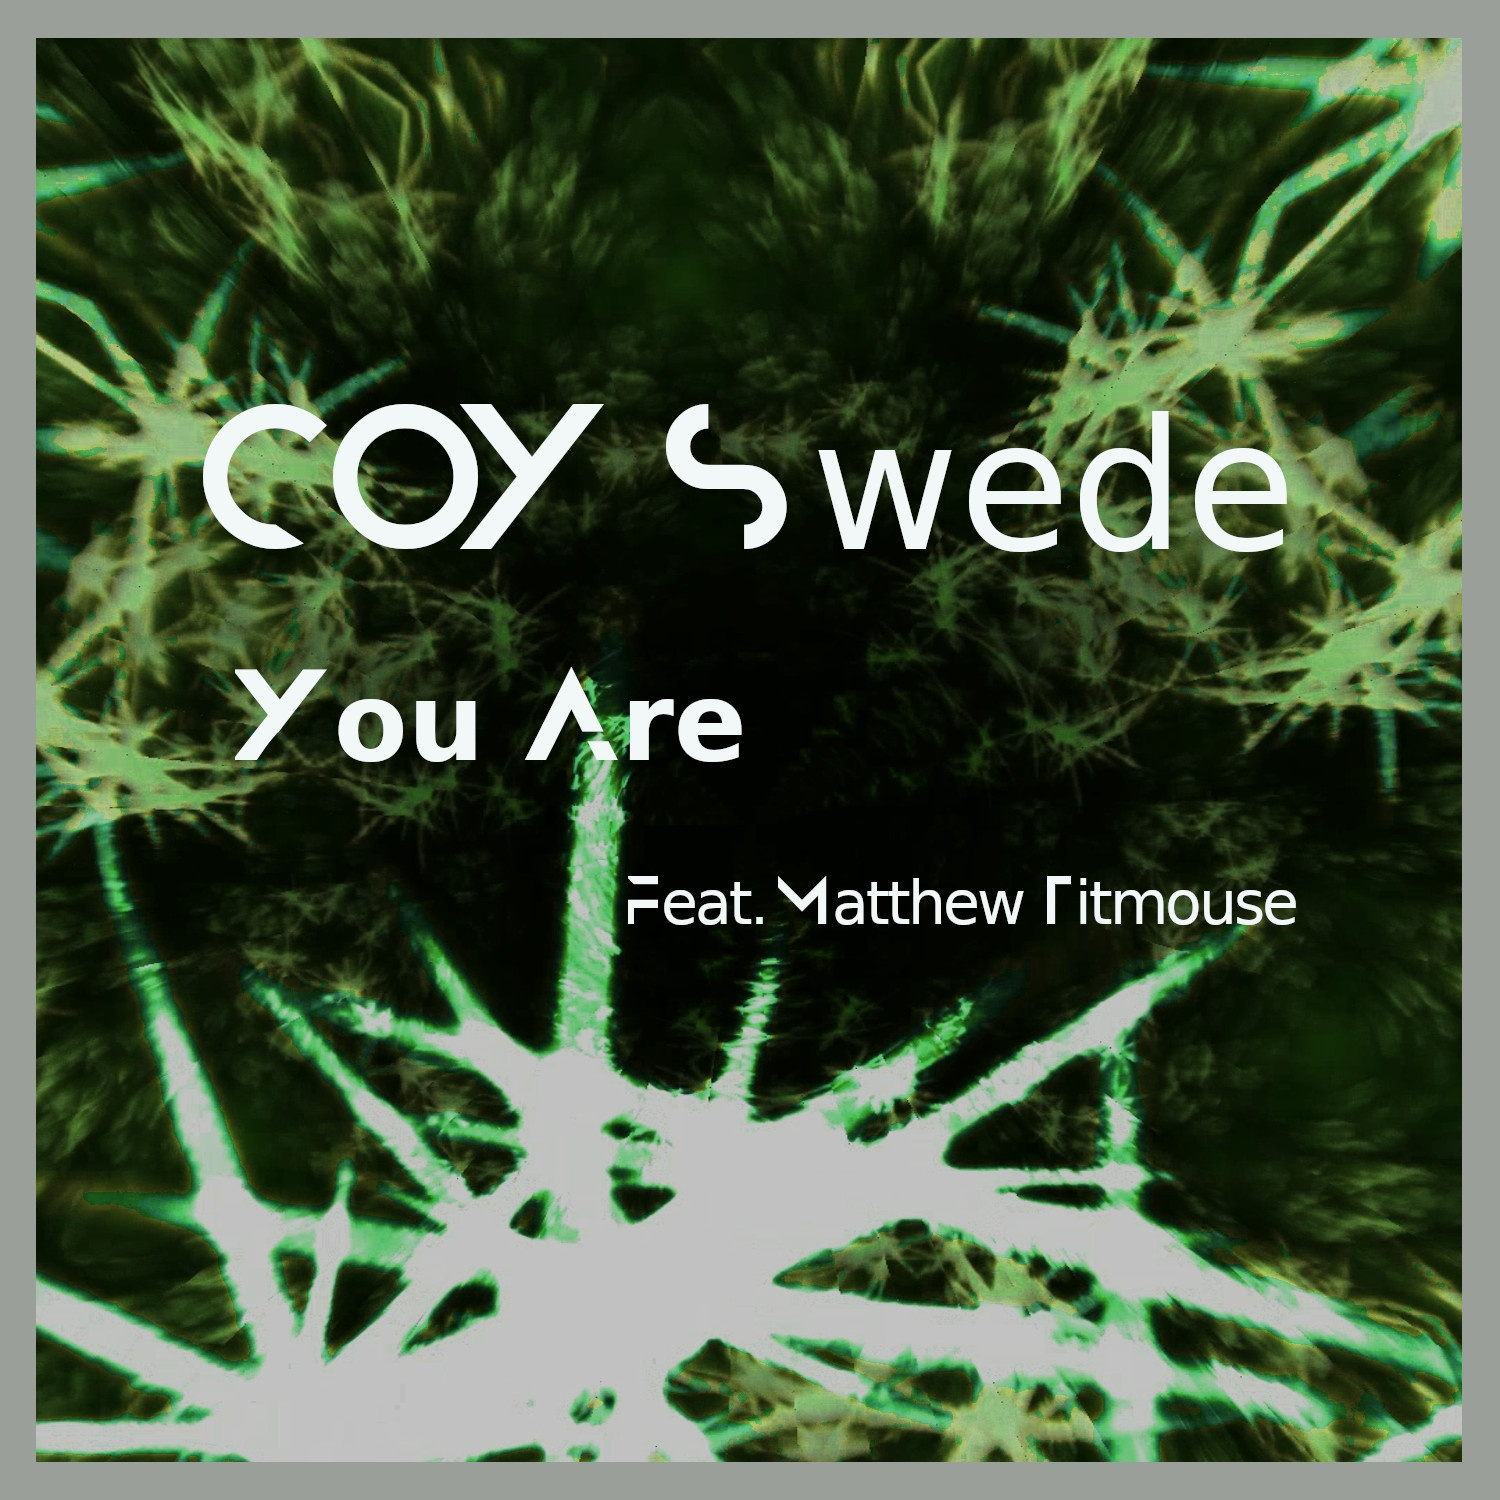 COY Swede You Are